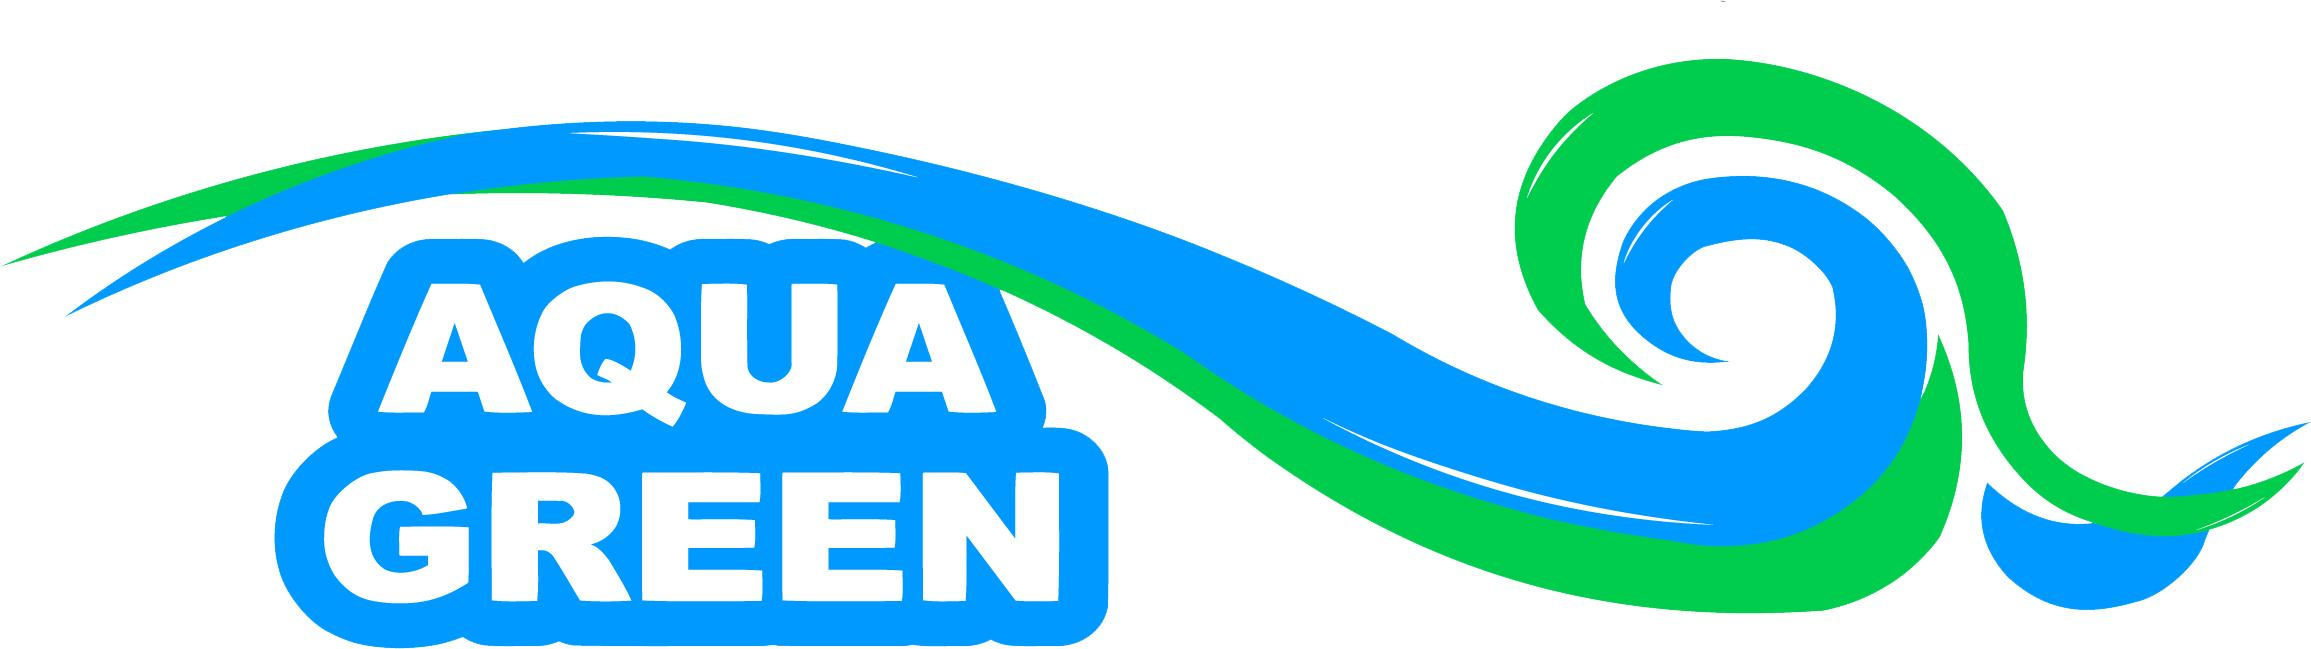 aquagreen logo_1_4